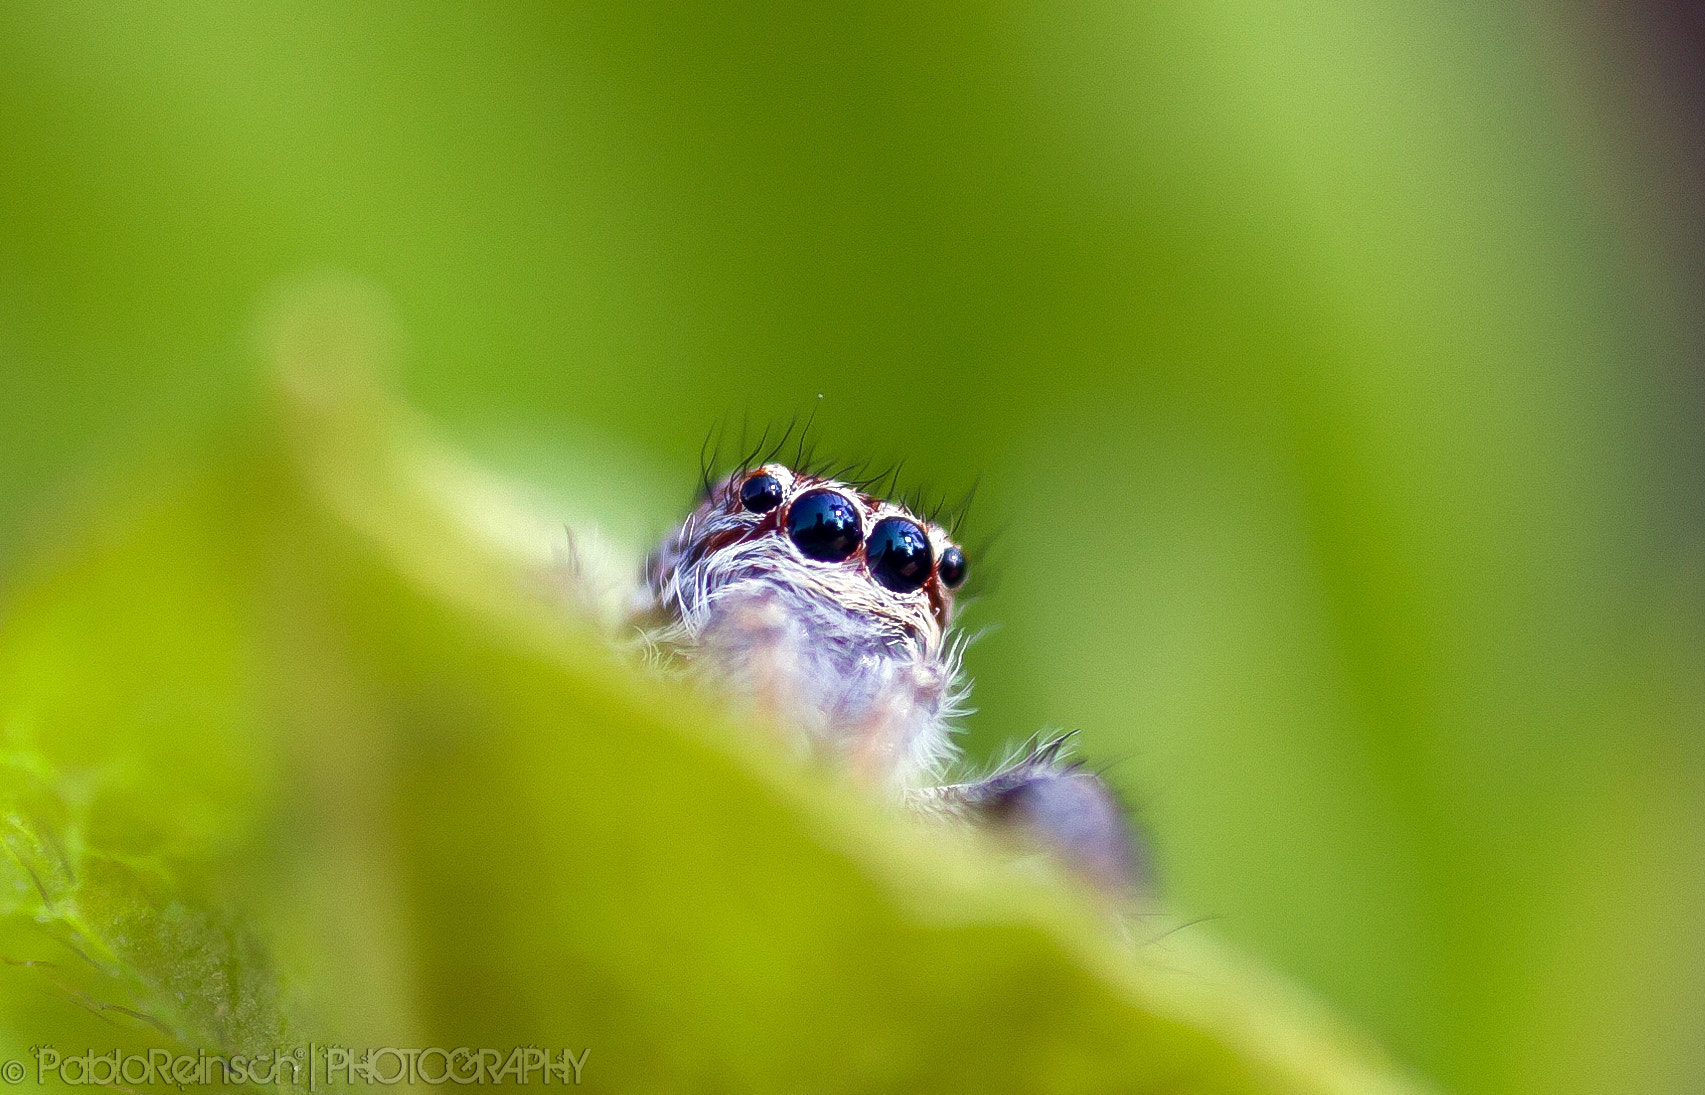 Photograph Spying by Pablo Reinsch on 500px